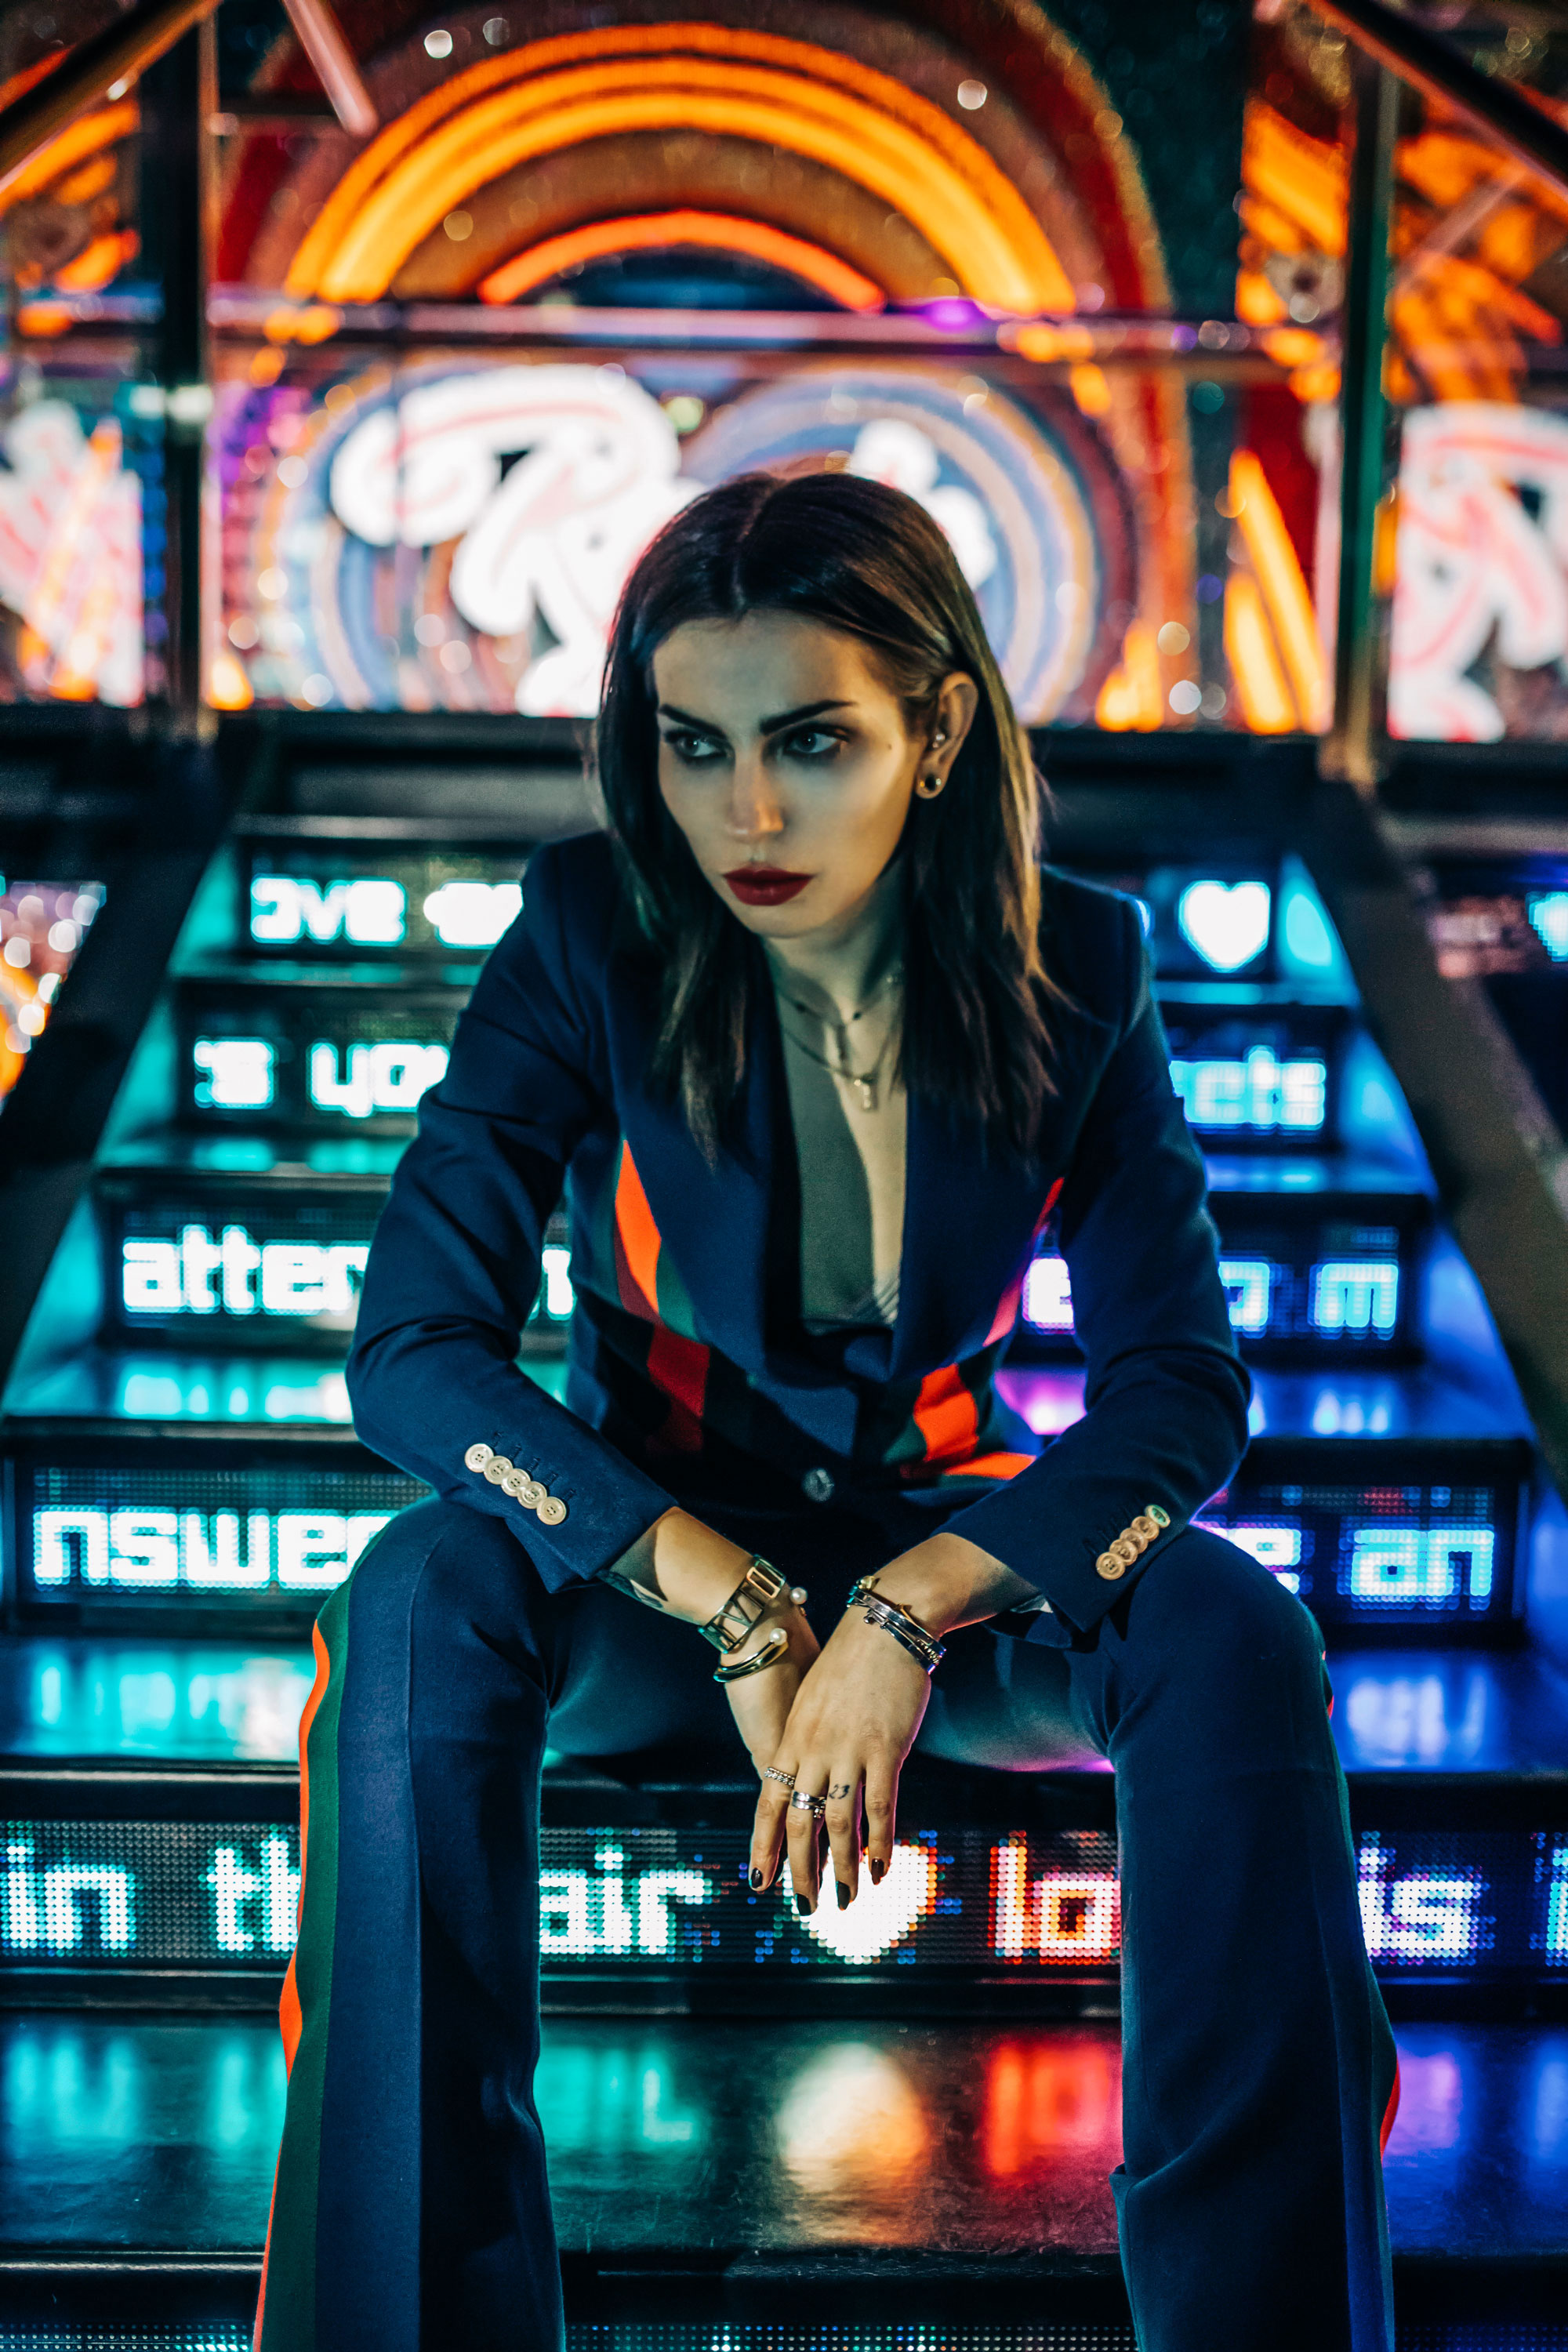 Swarovski Kristallwelten | Two piece from Gucci | Editorial Fashion Shooting | colorful, neon, sign, light, party, blacklight, drugs, clubs, generation Y & Z